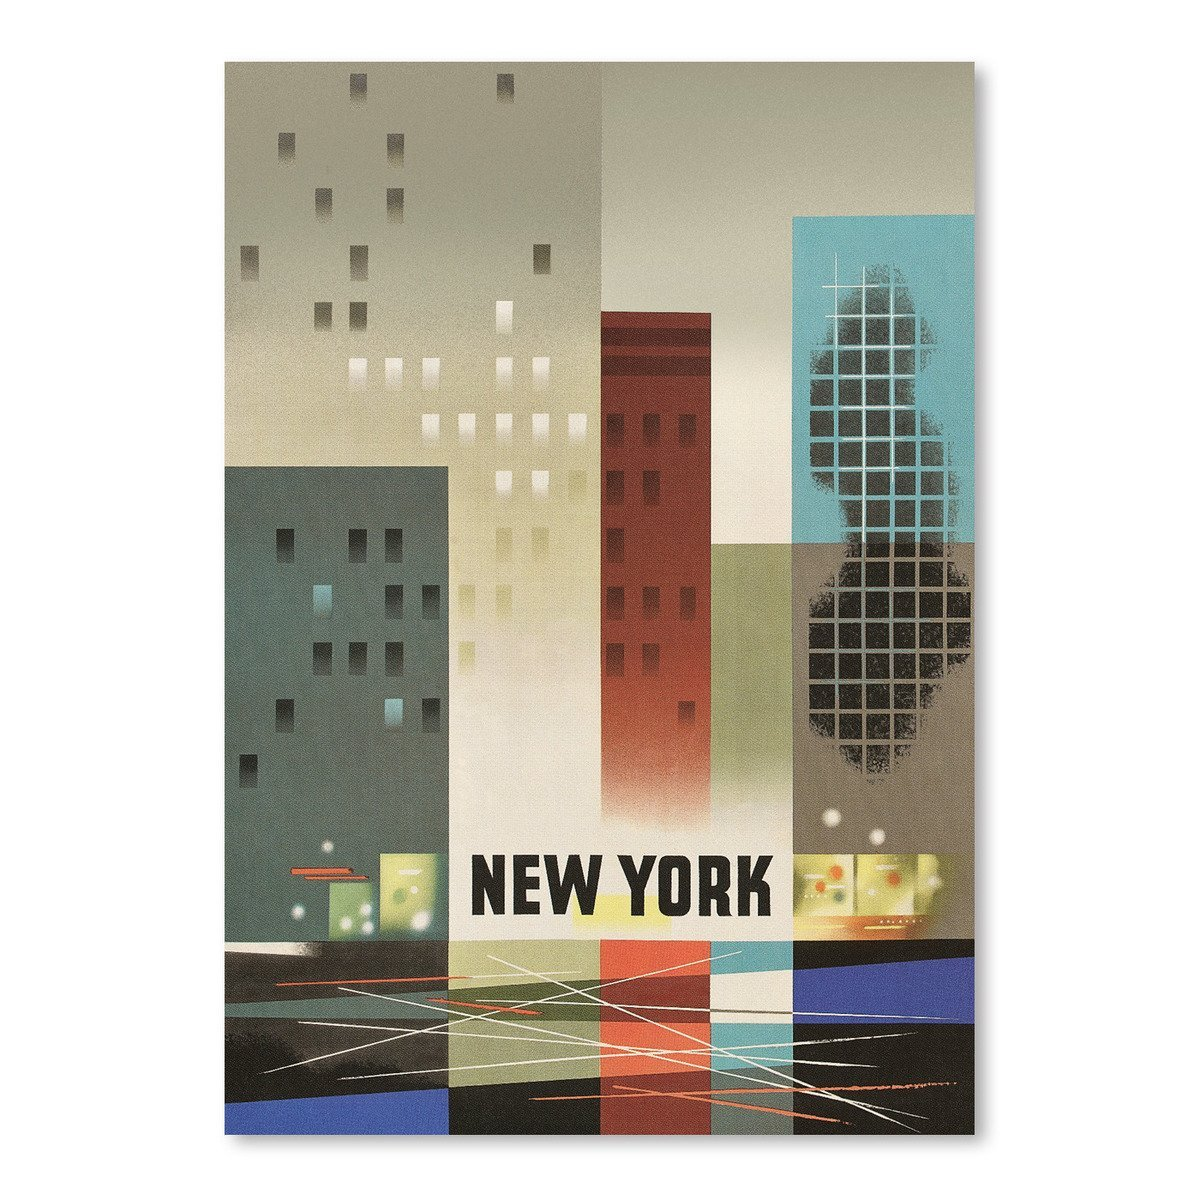 Abstract New York City by Found Image Press Art Print - Art Print - Americanflat